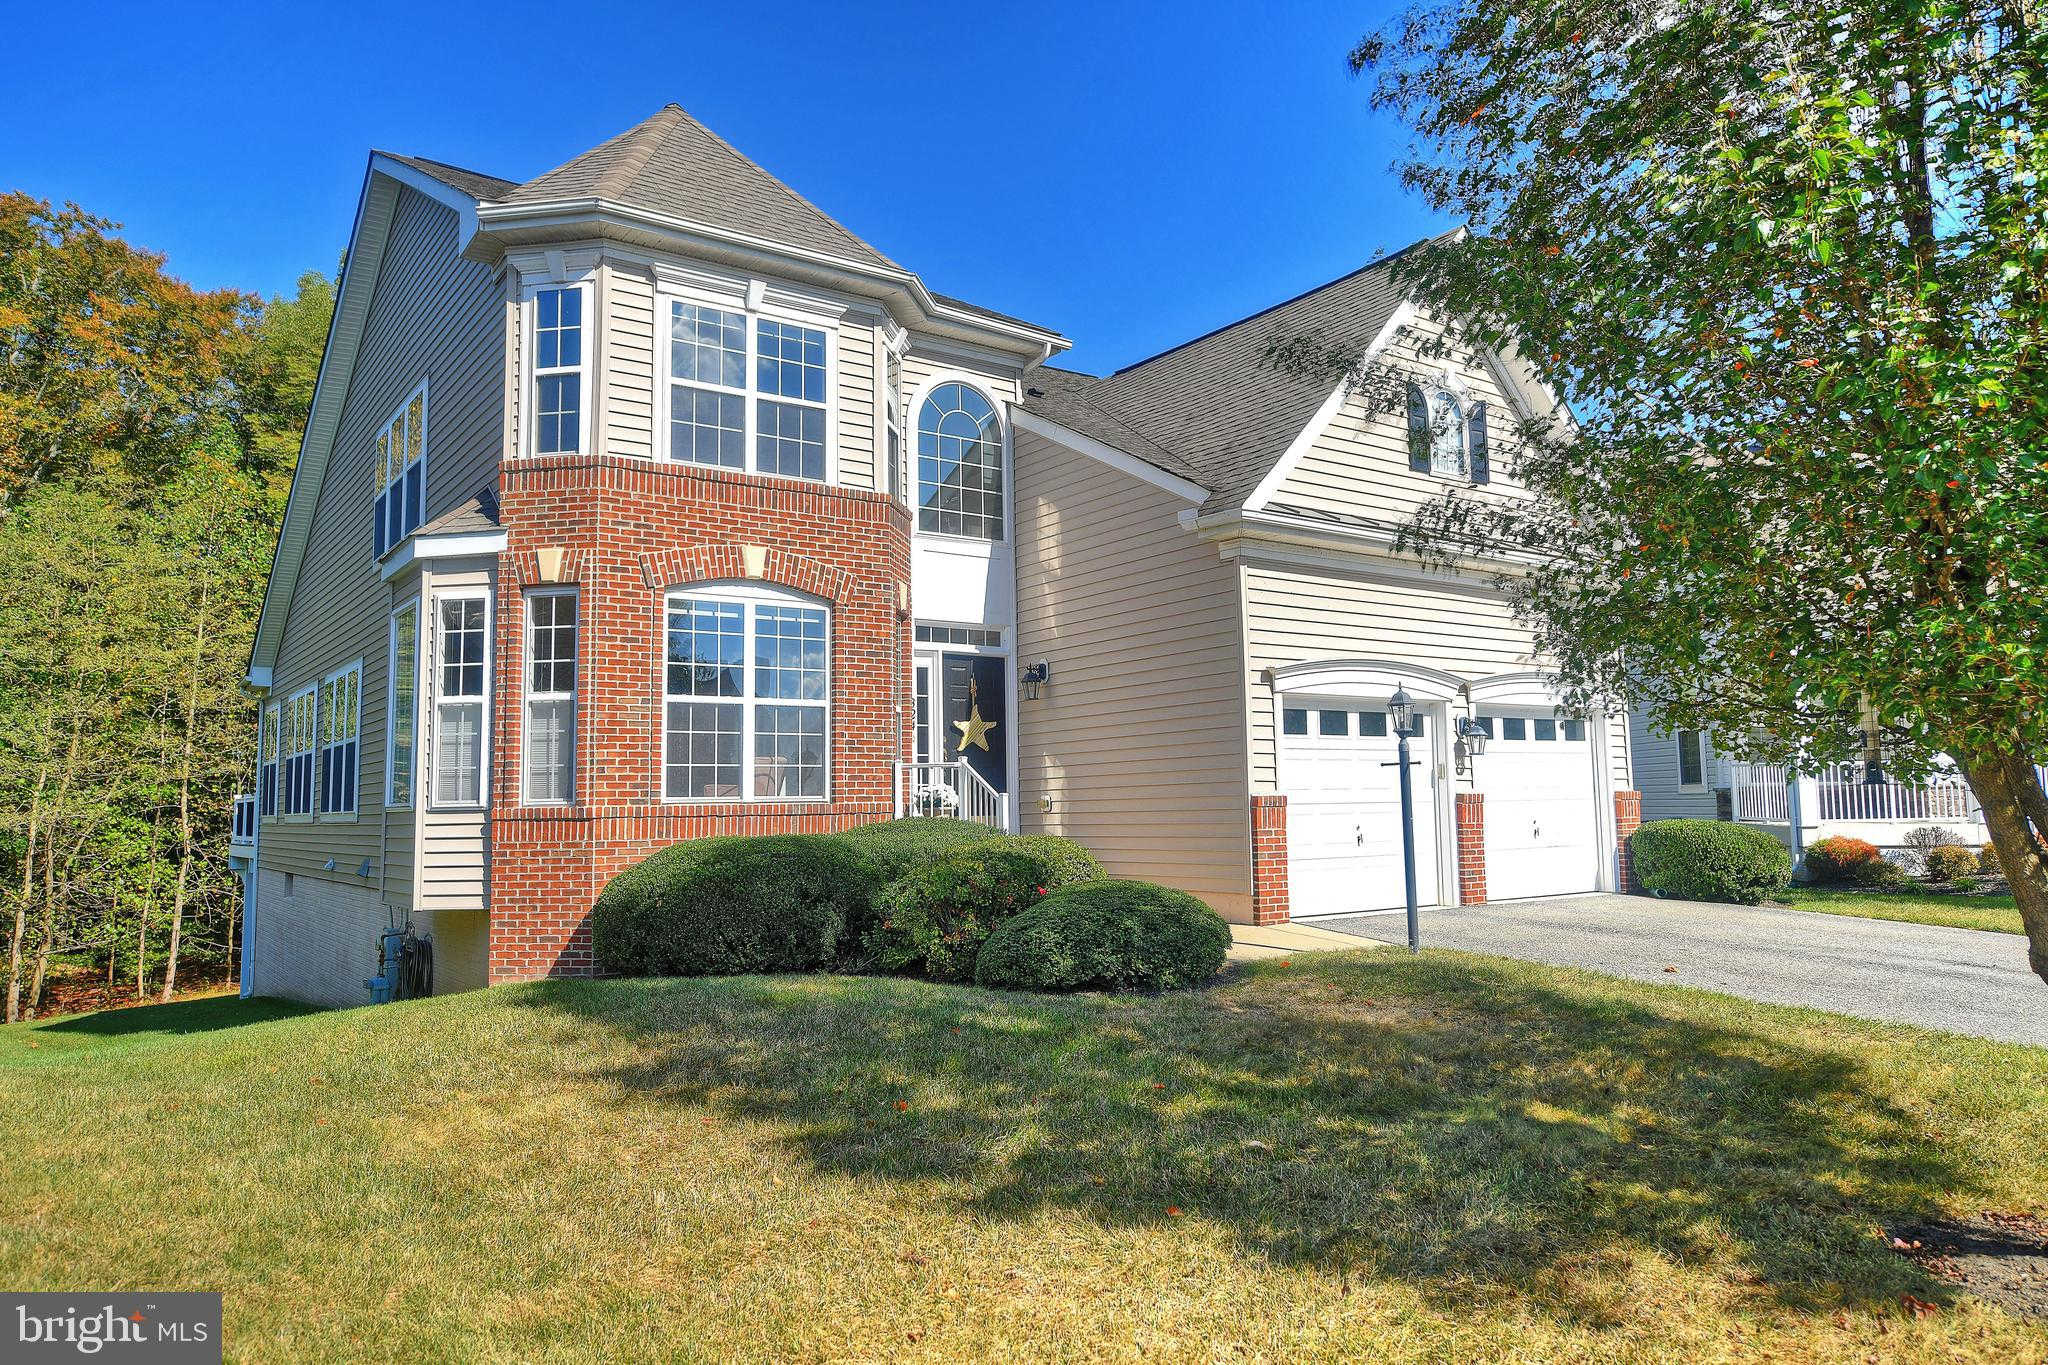 324 Summer Squall Court, Havre DE Grace, MD 21078 is now new to the market!